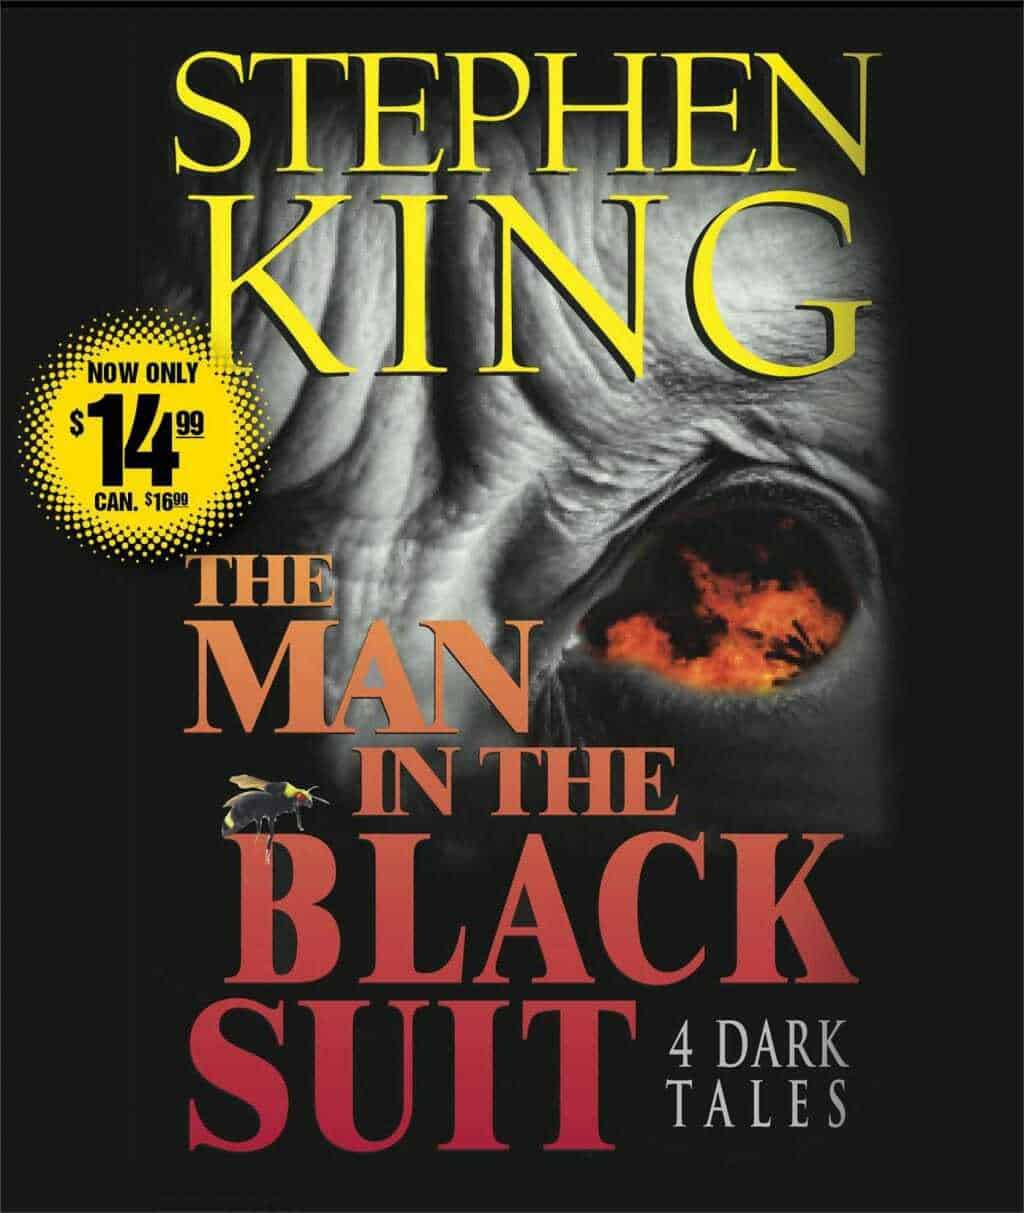 Stephen King - The Man in the Black Suit Audiobook Free Download